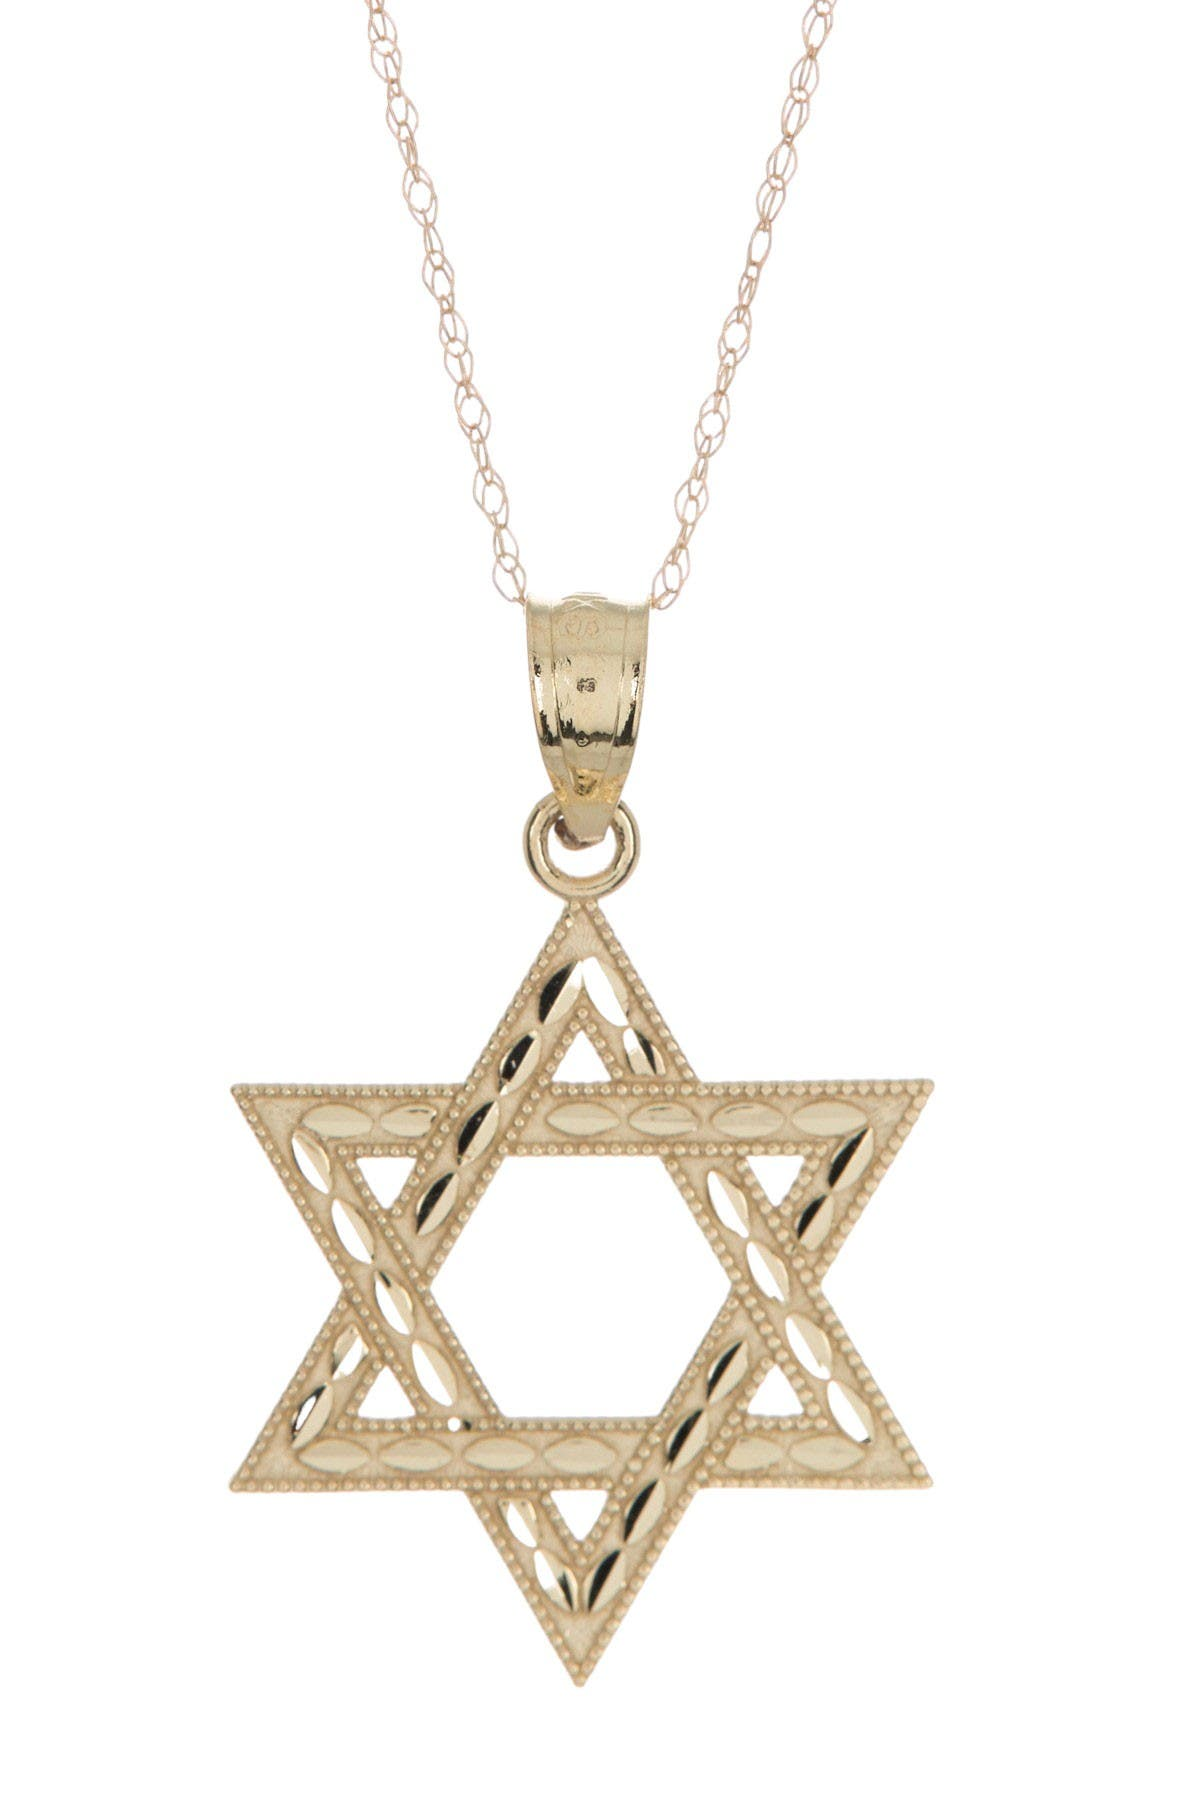 Image of Candela 10K Yellow Gold Star of David Pendant Necklace